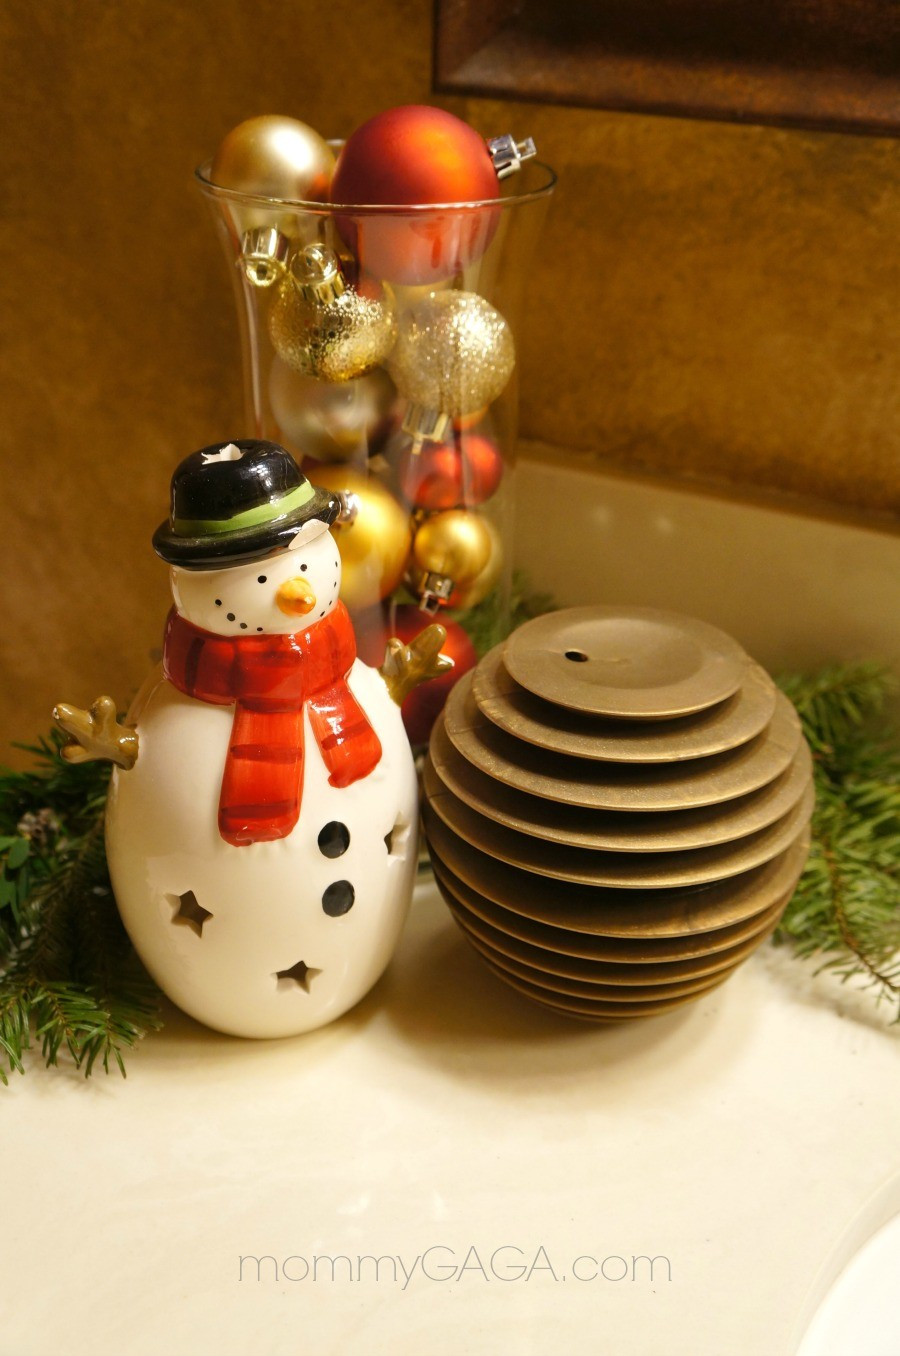 Best ideas about Christmas DIY Decorations . Save or Pin Holiday Home Decor Christmas Decorating Ideas for The Now.